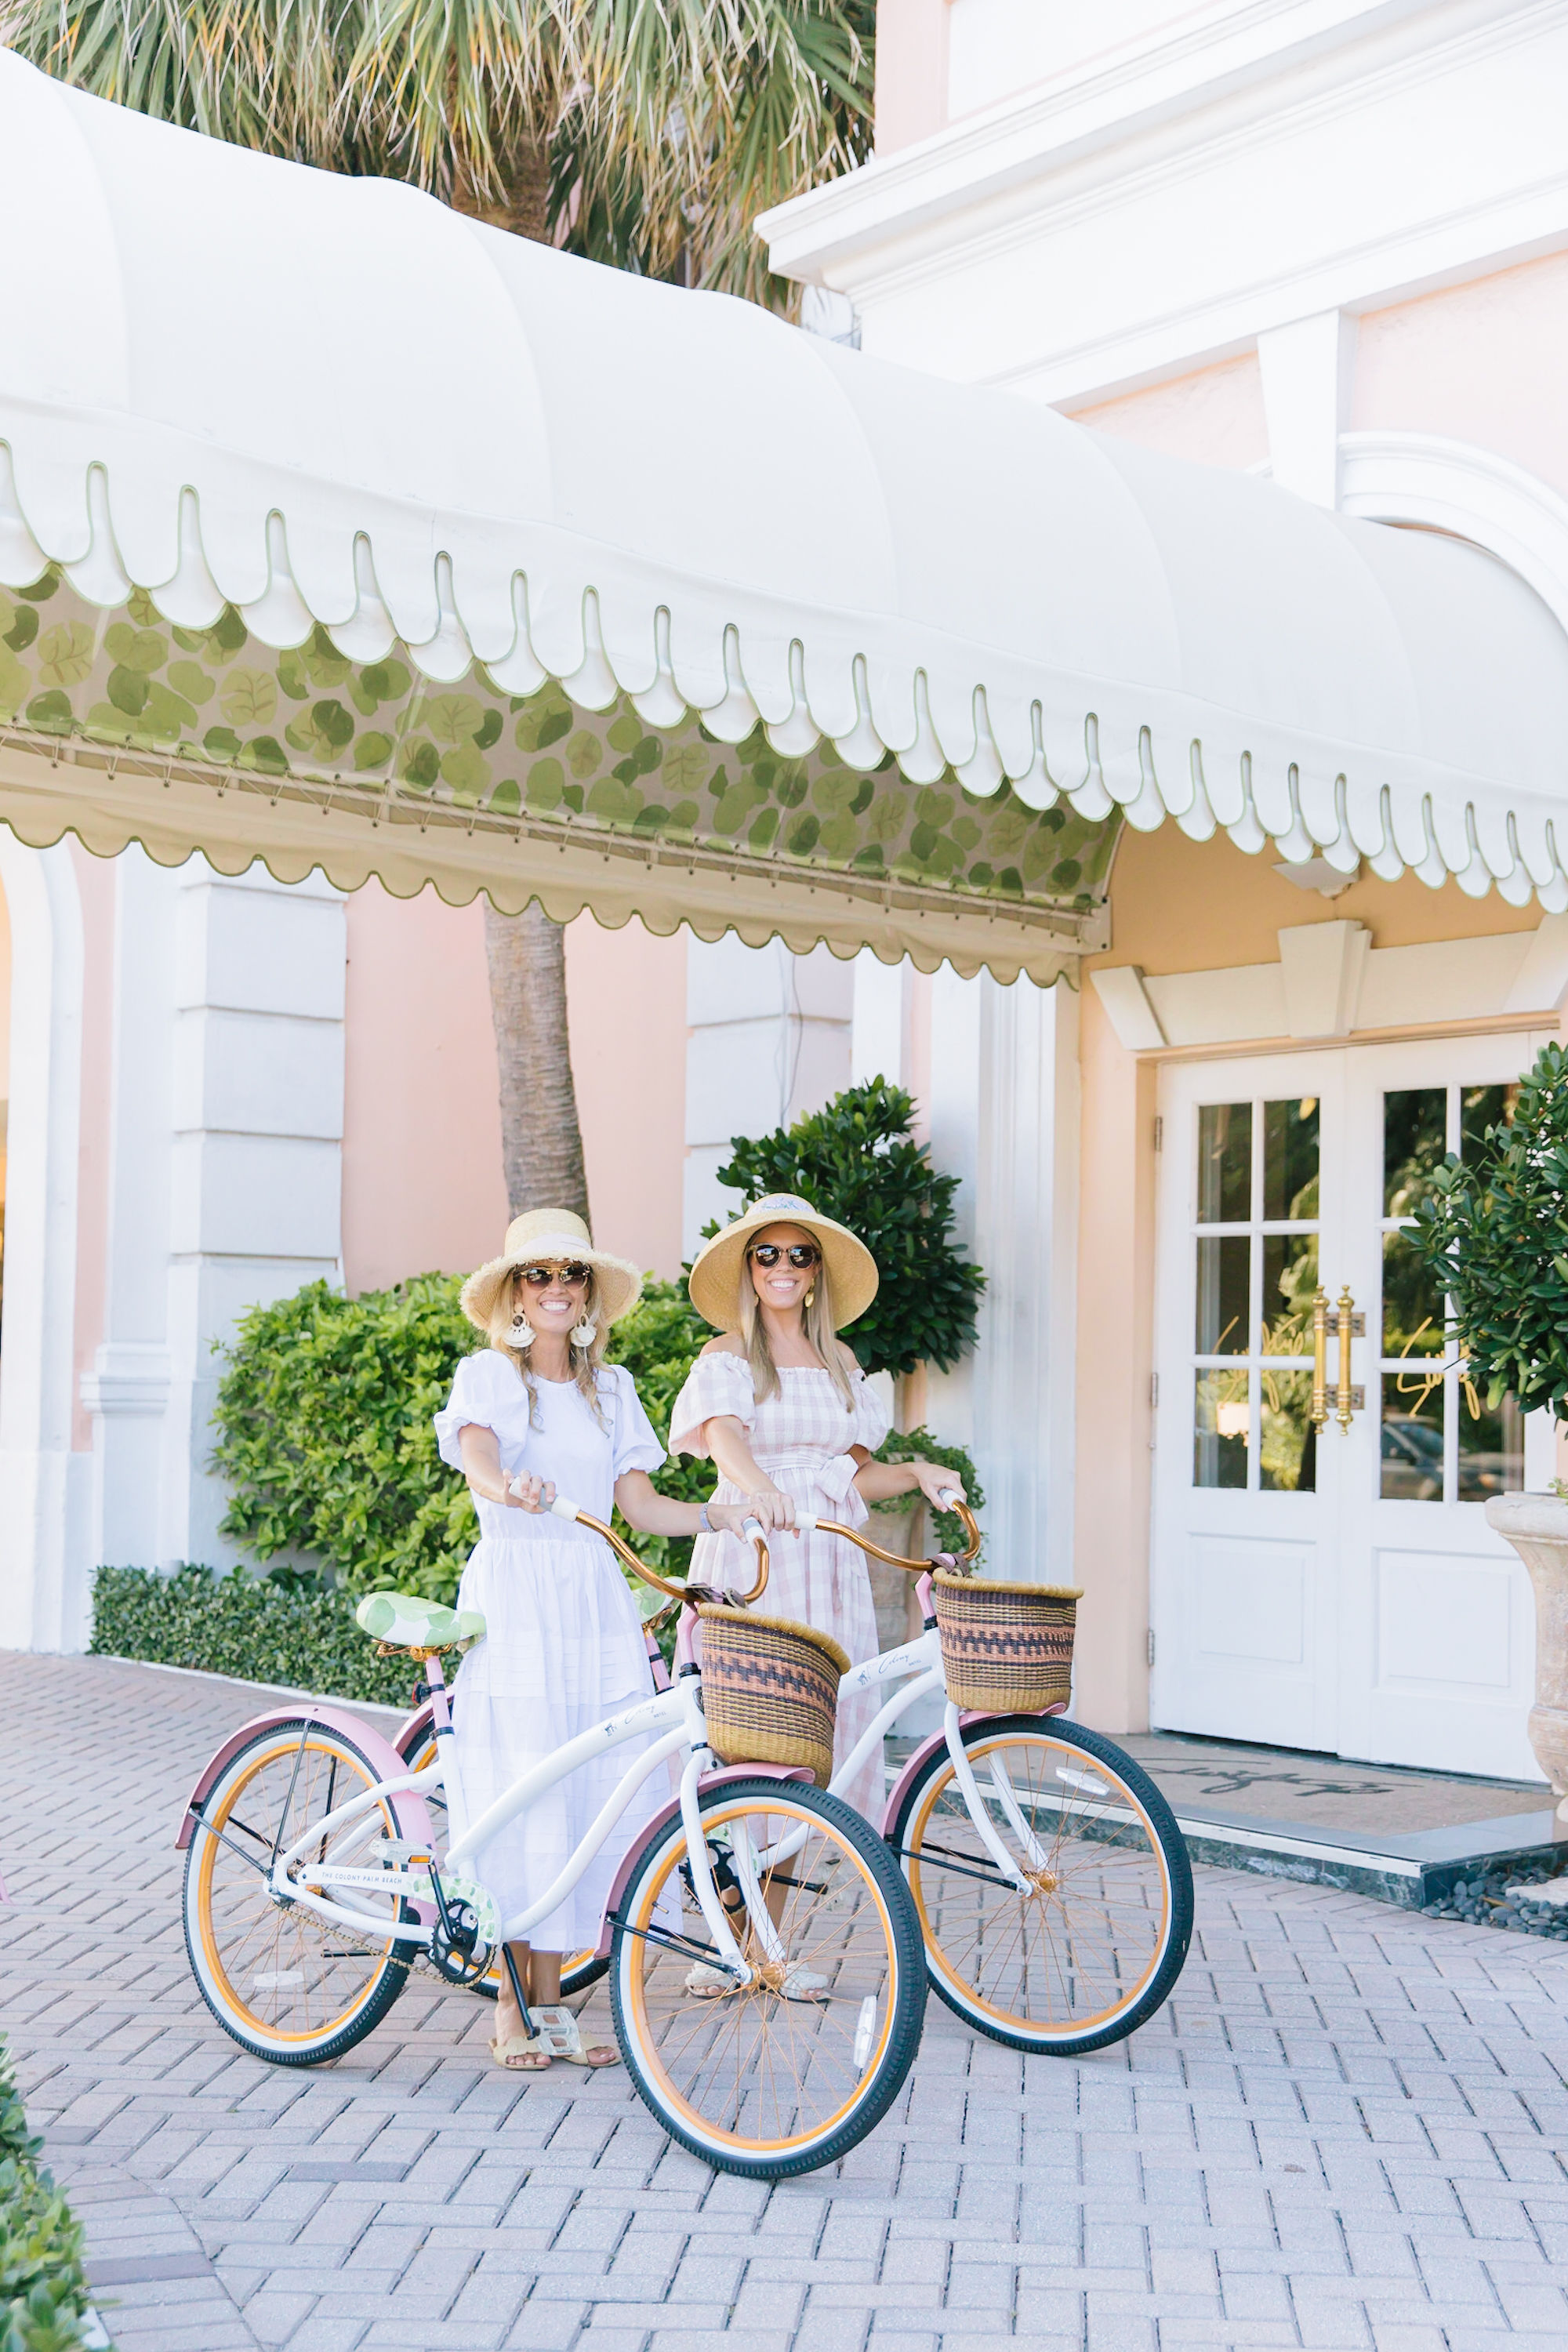 Travel: Staycation at The Colony Palm Beach with Palm Beach Lately